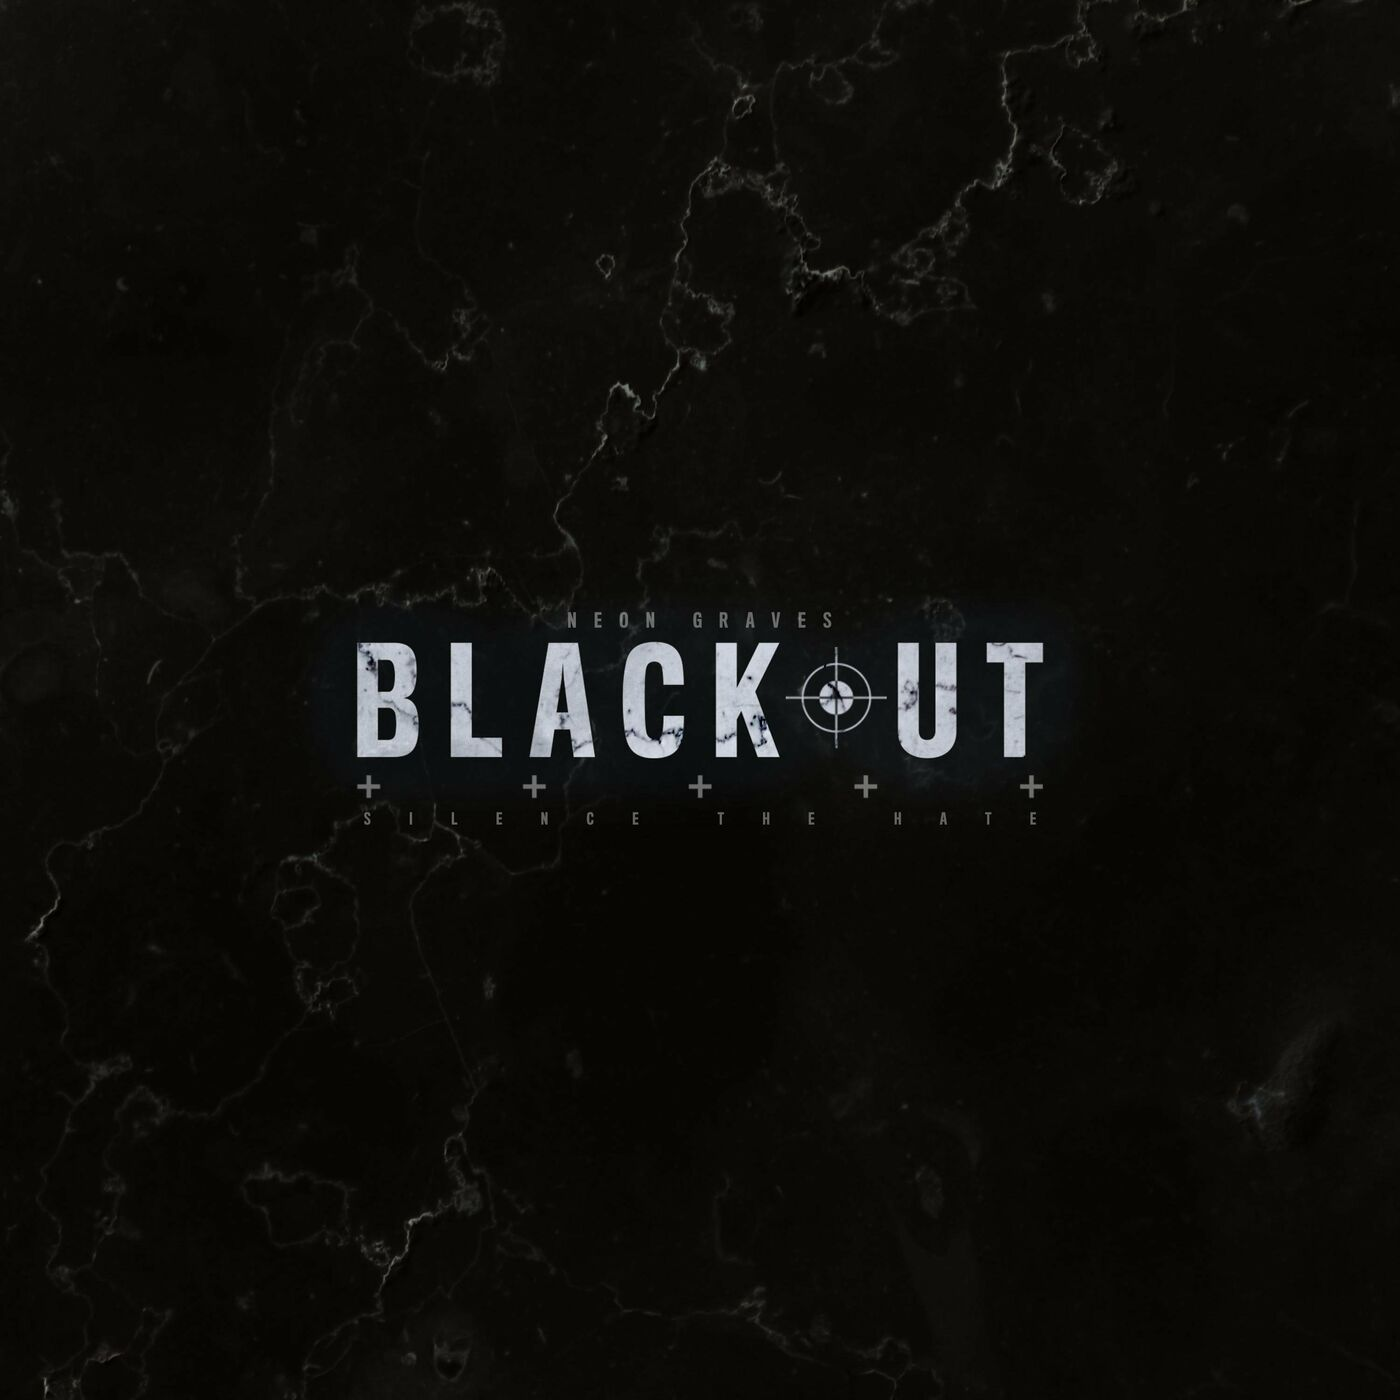 Neon Graves - Blackout [single] (2020)